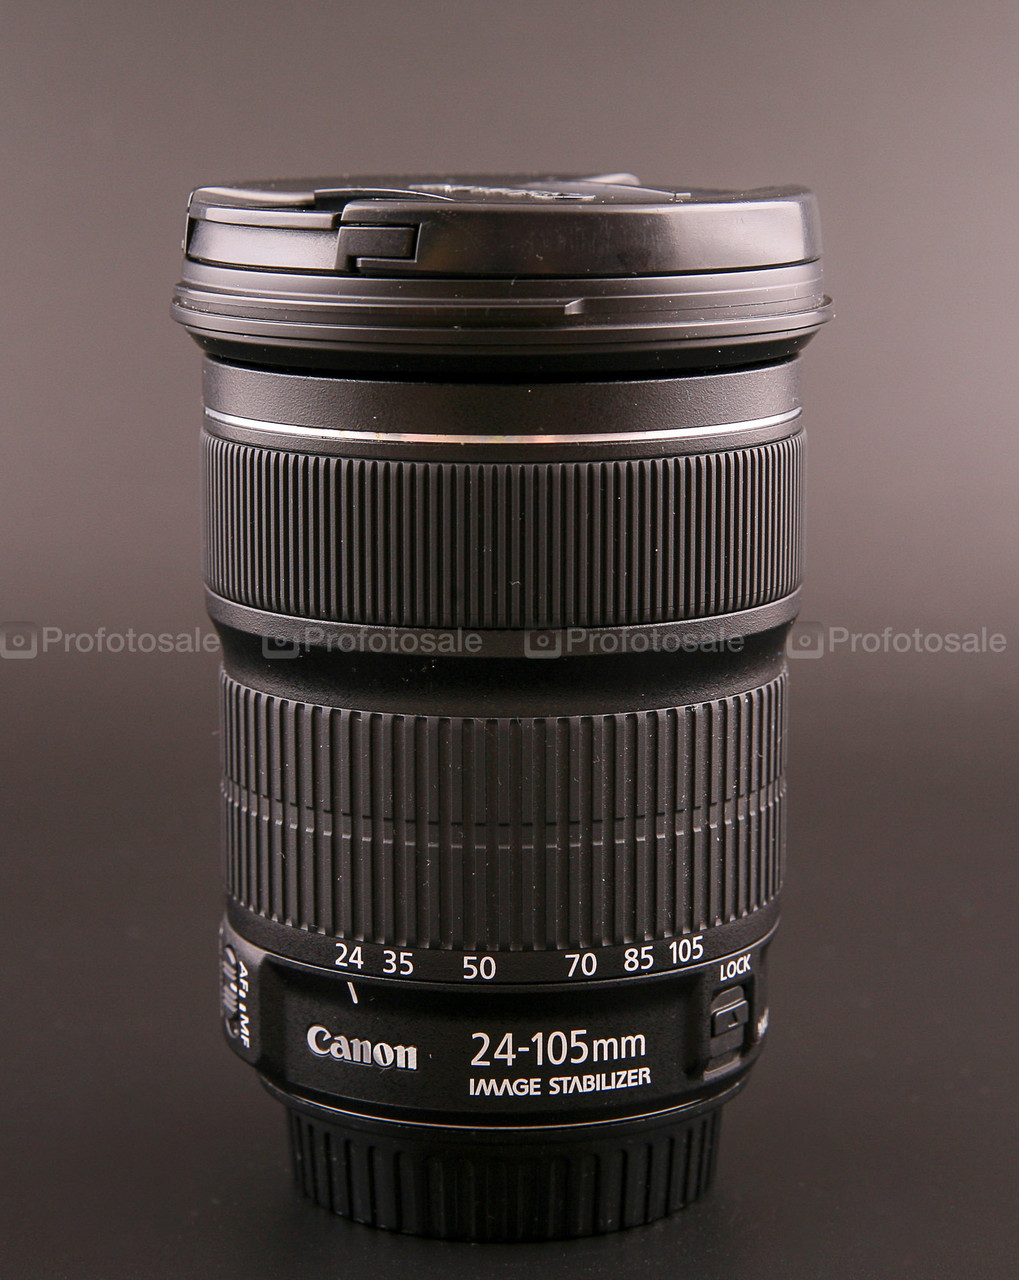 Canon EF 24-105 f3.5-5.6 IS STM